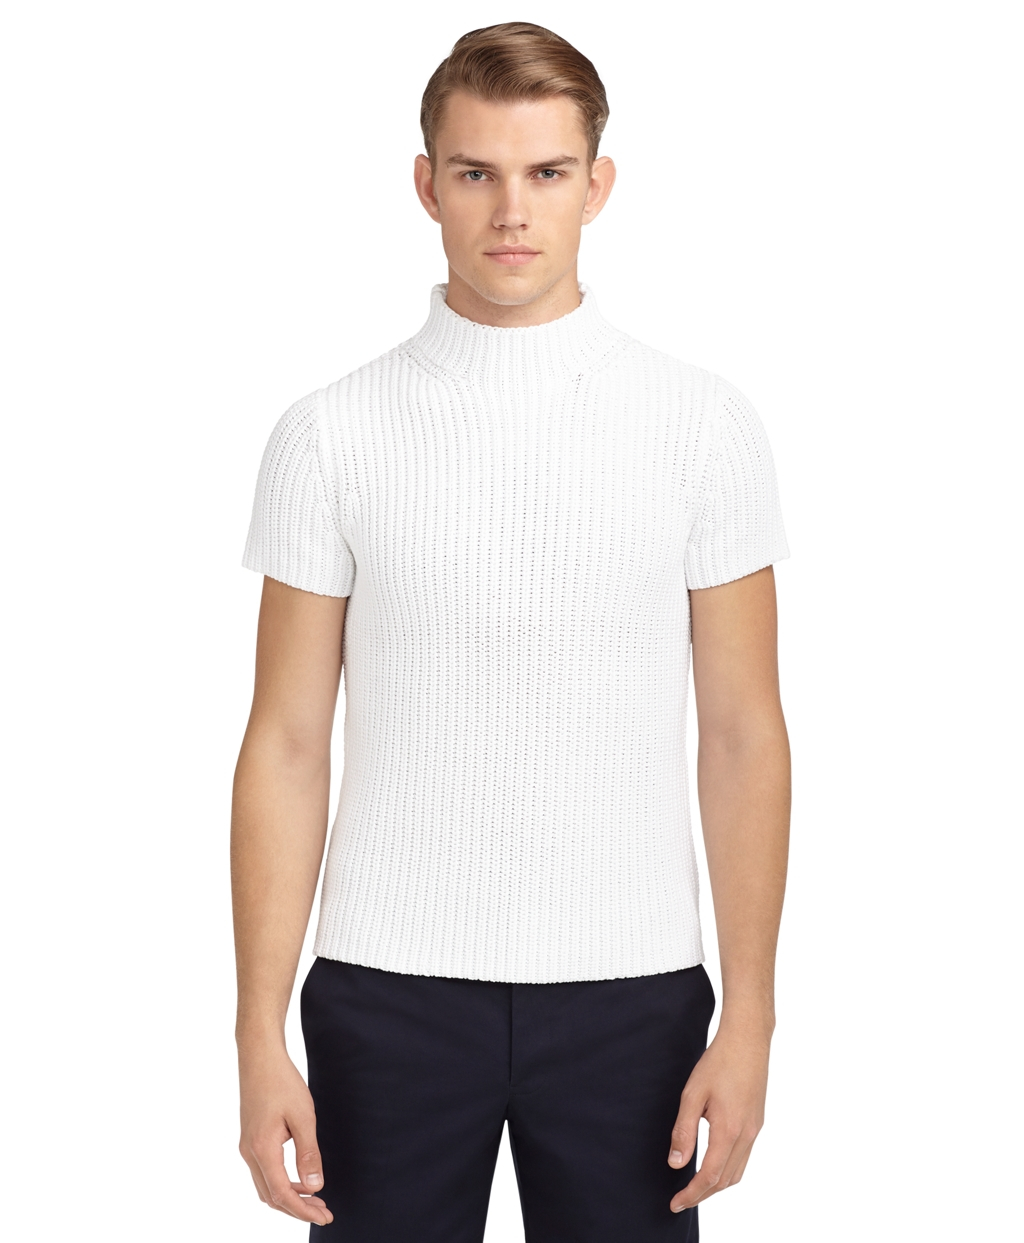 Ribbed Cotton Sweater 2084 also 152311275649 likewise Brooks Brothers Short Sleeve Stitch Turtleneck Sweater White 1 further Oscar De La Renta Quarterzip Mock Neck Faux Fur Microsherpalined Ribbed Cotton Pullover Taupe Pre Twist as well 7583504918. on oscar de la renta sweater men s brown